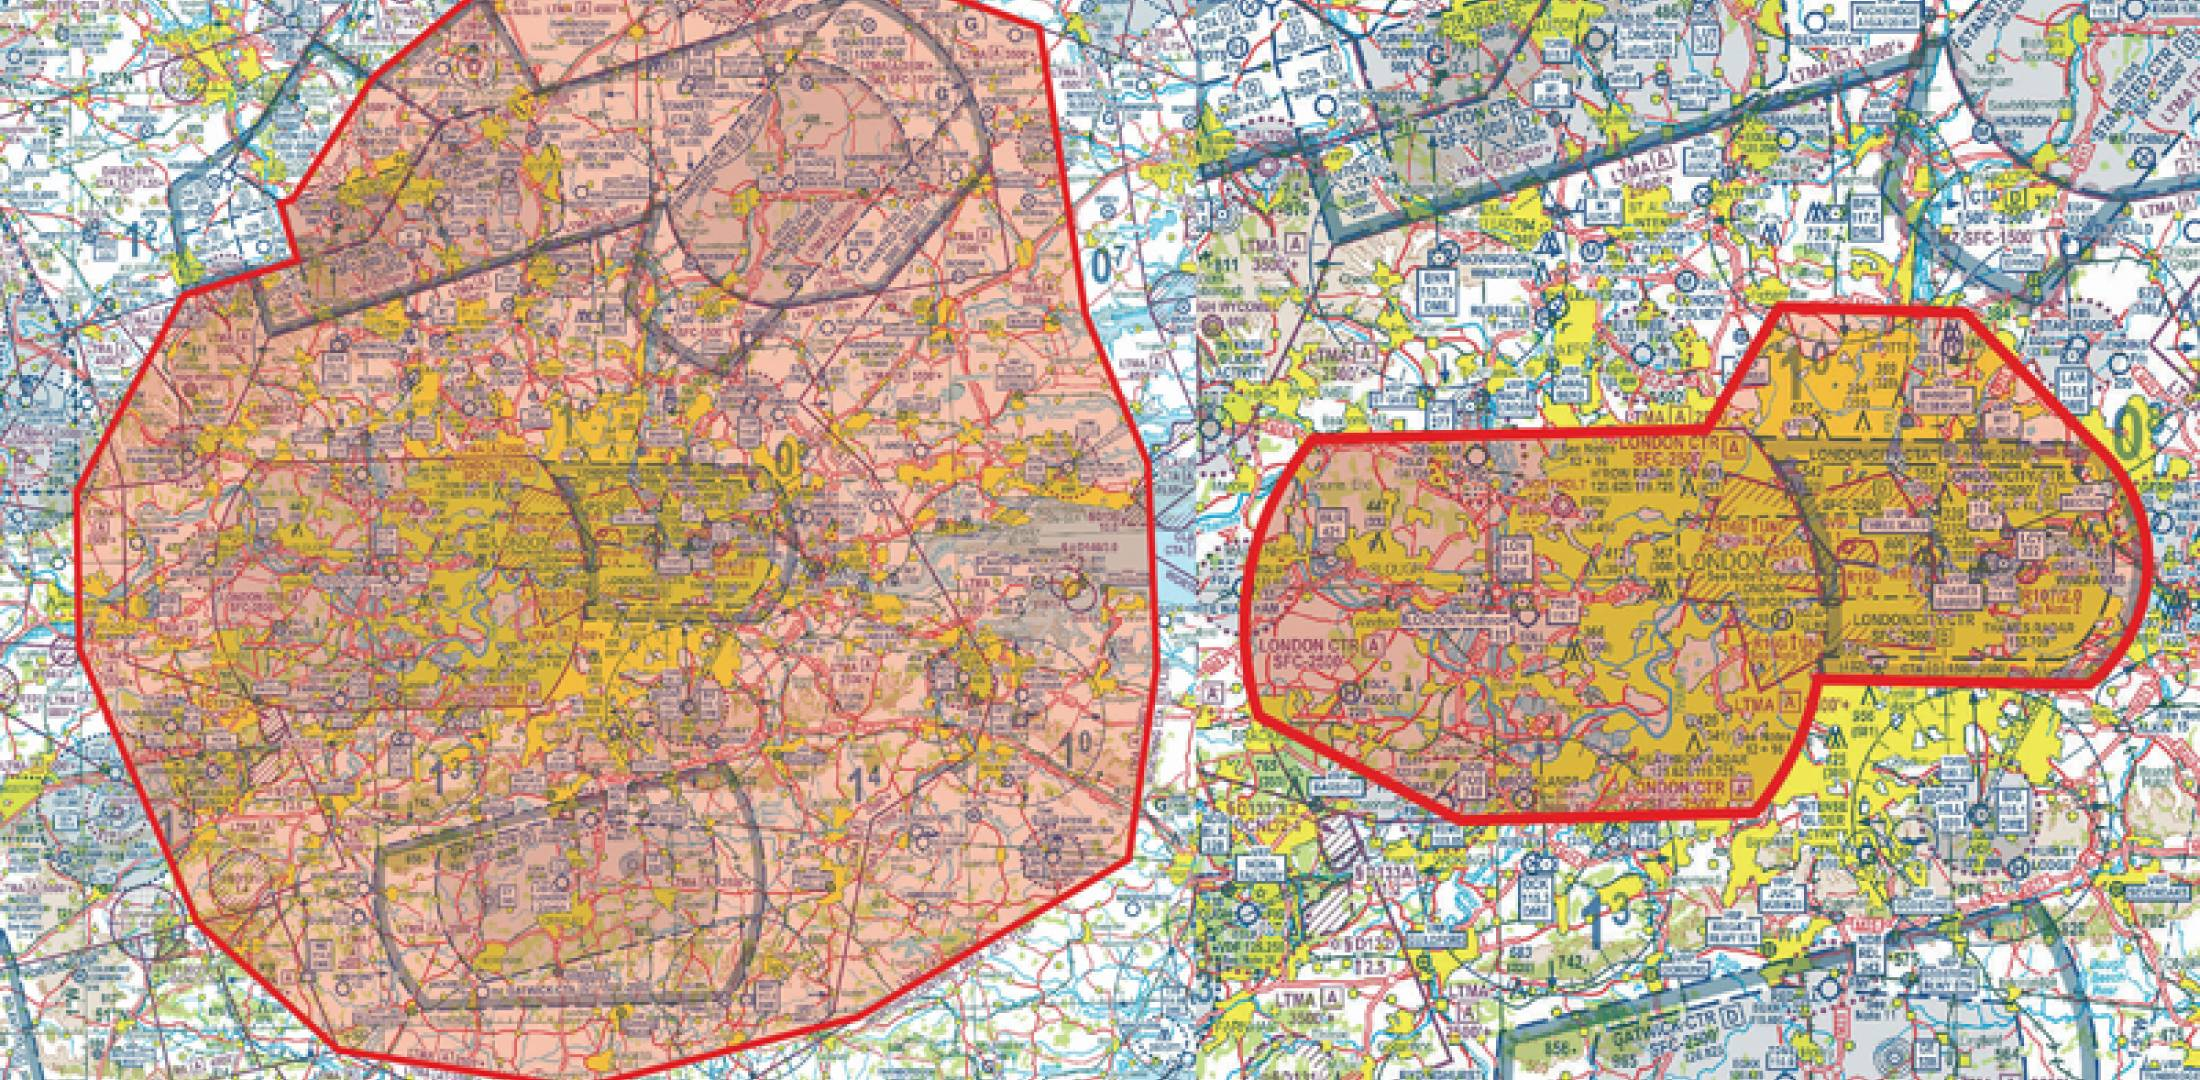 London Olympics 2012 restricted zones.